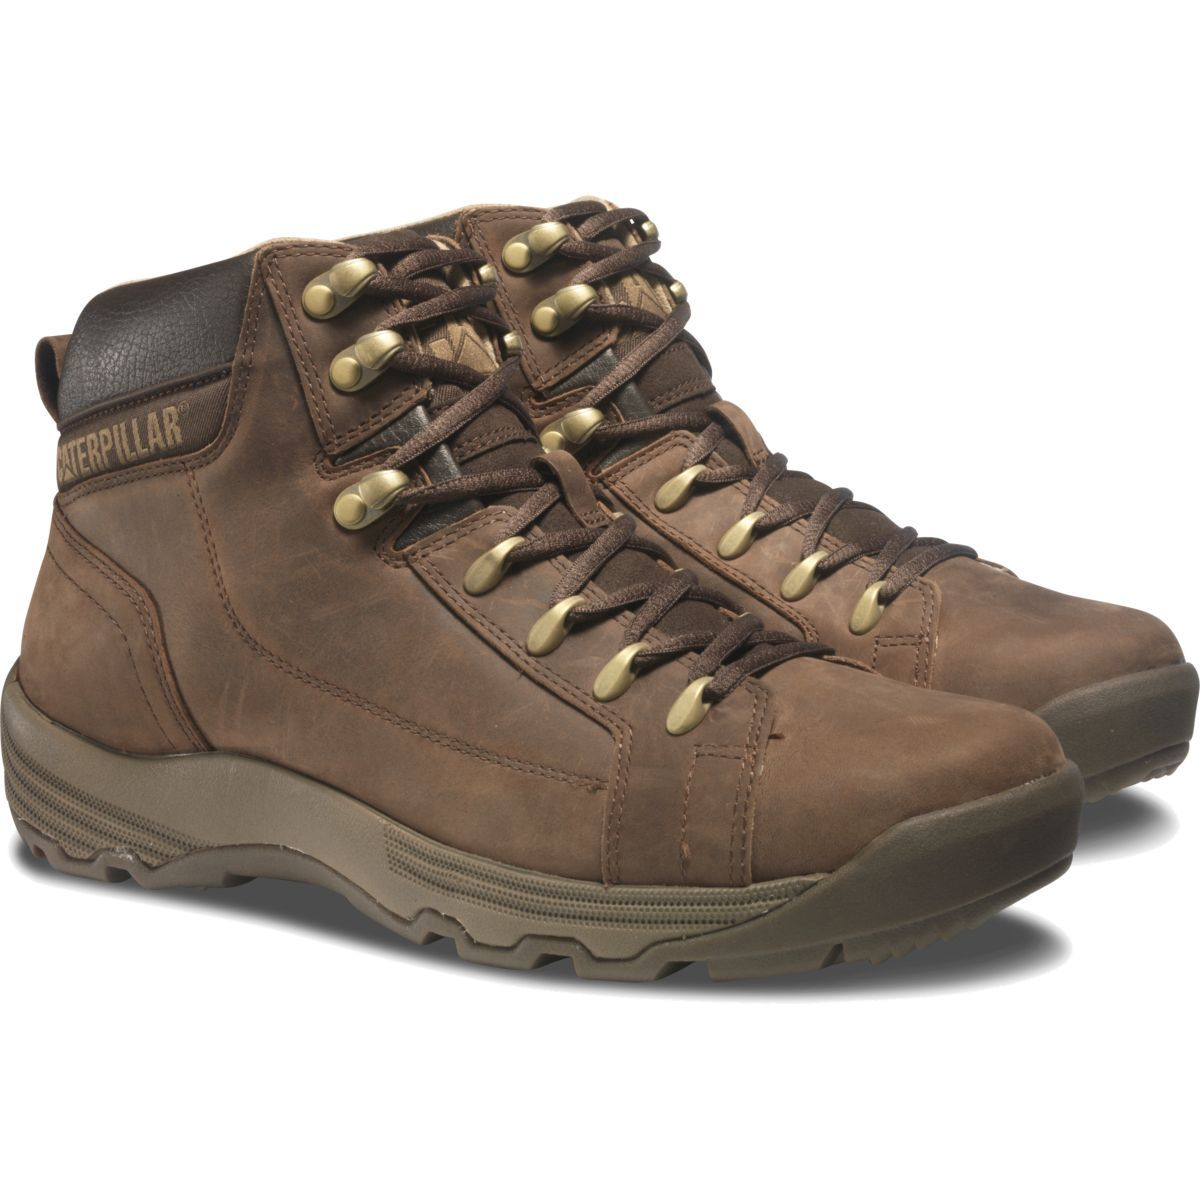 Online shopping for promotional items, sporting goods, office products,  home and garden, and apparel. Shoes Men, Caterpillar ...